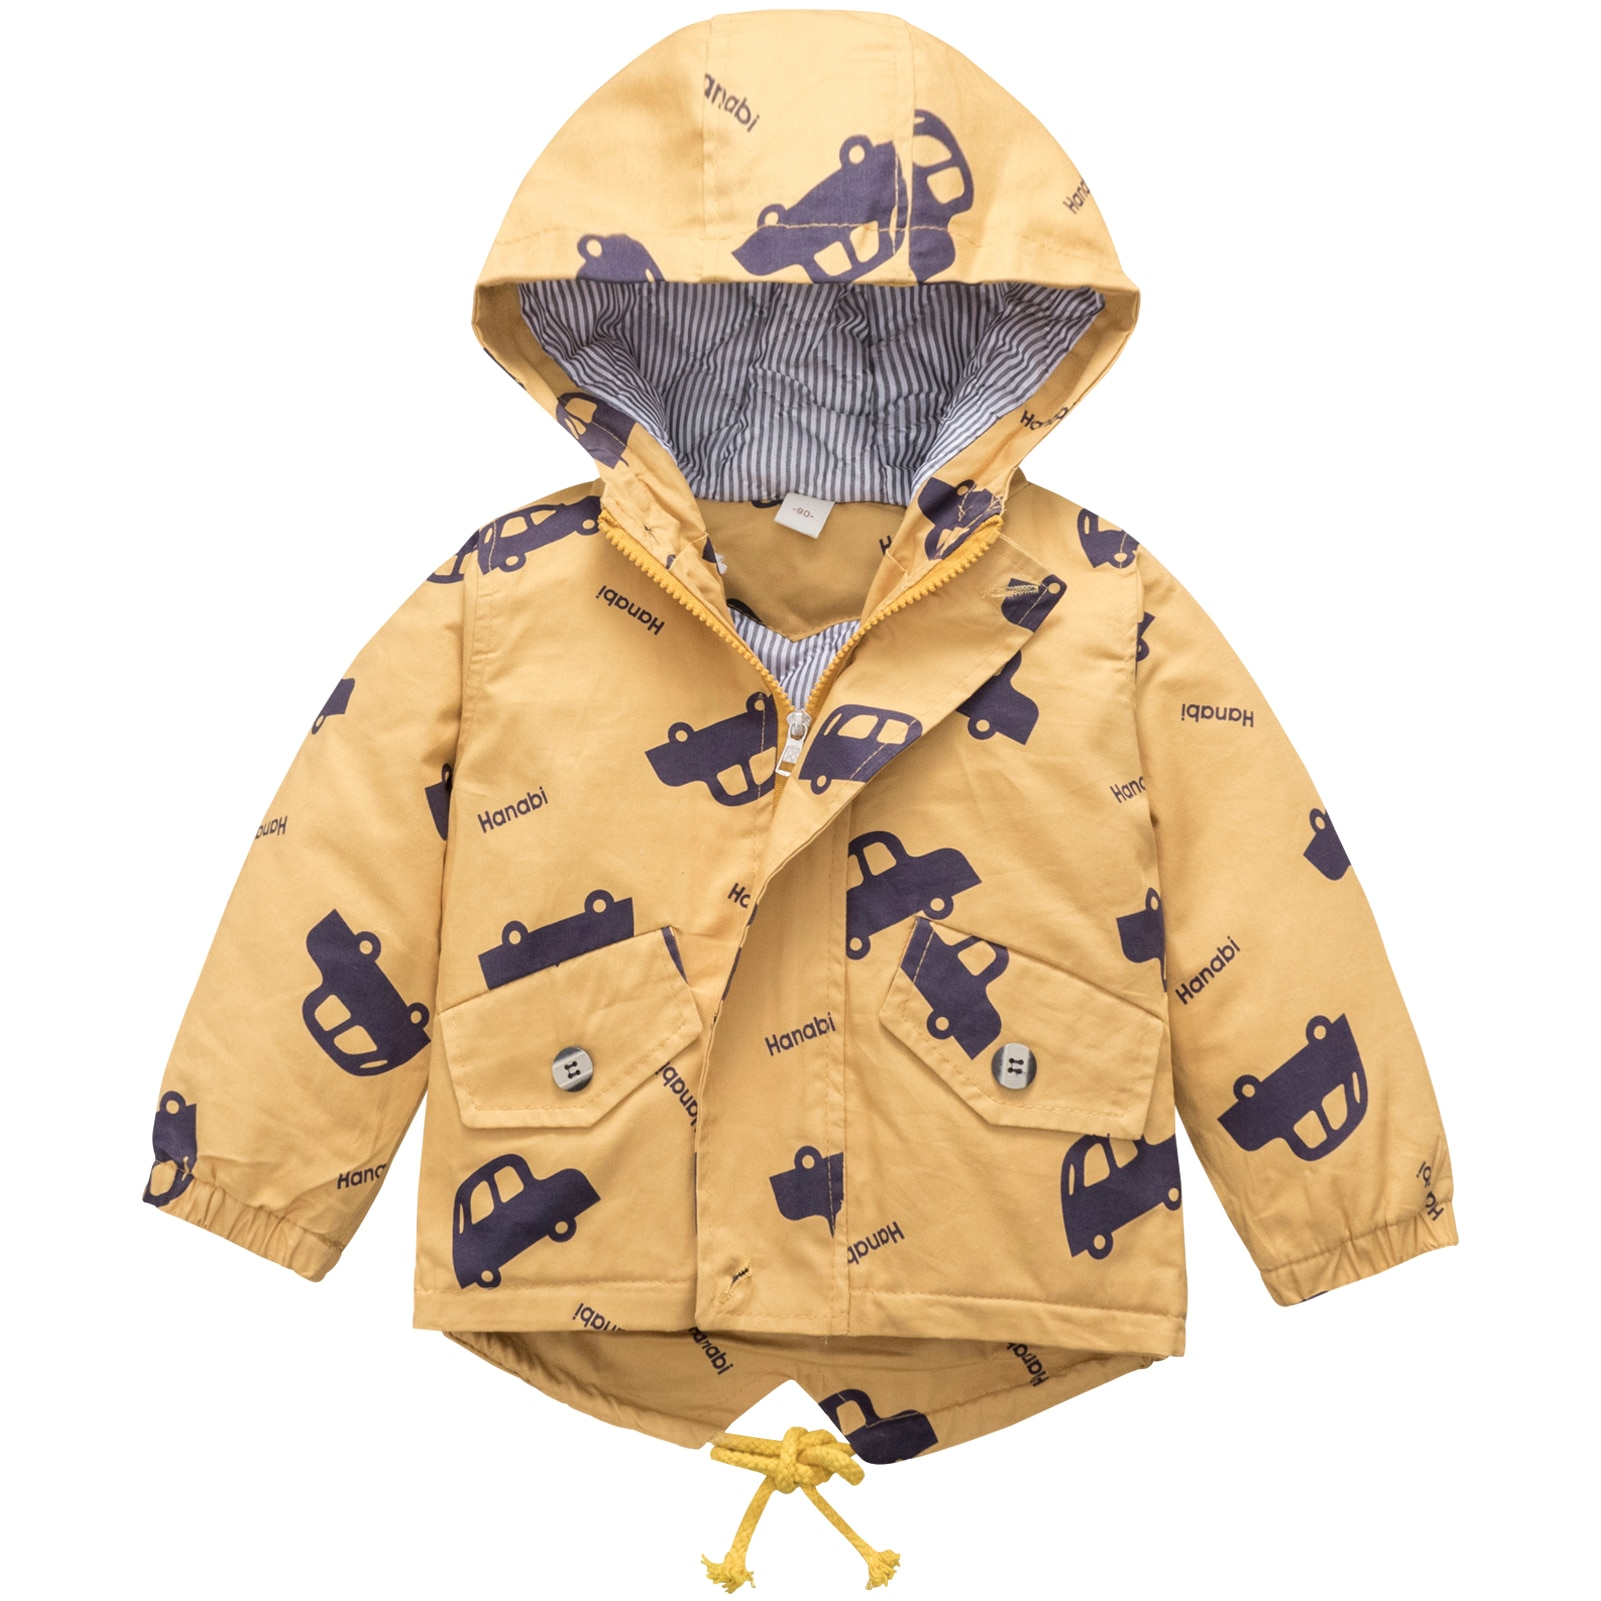 Boys Cartoon Jackets Casual Windproof Outerwear Autumn Winter Hooded Coats Kids Cotton Tops with Zipper and Pocket Long Sleeve